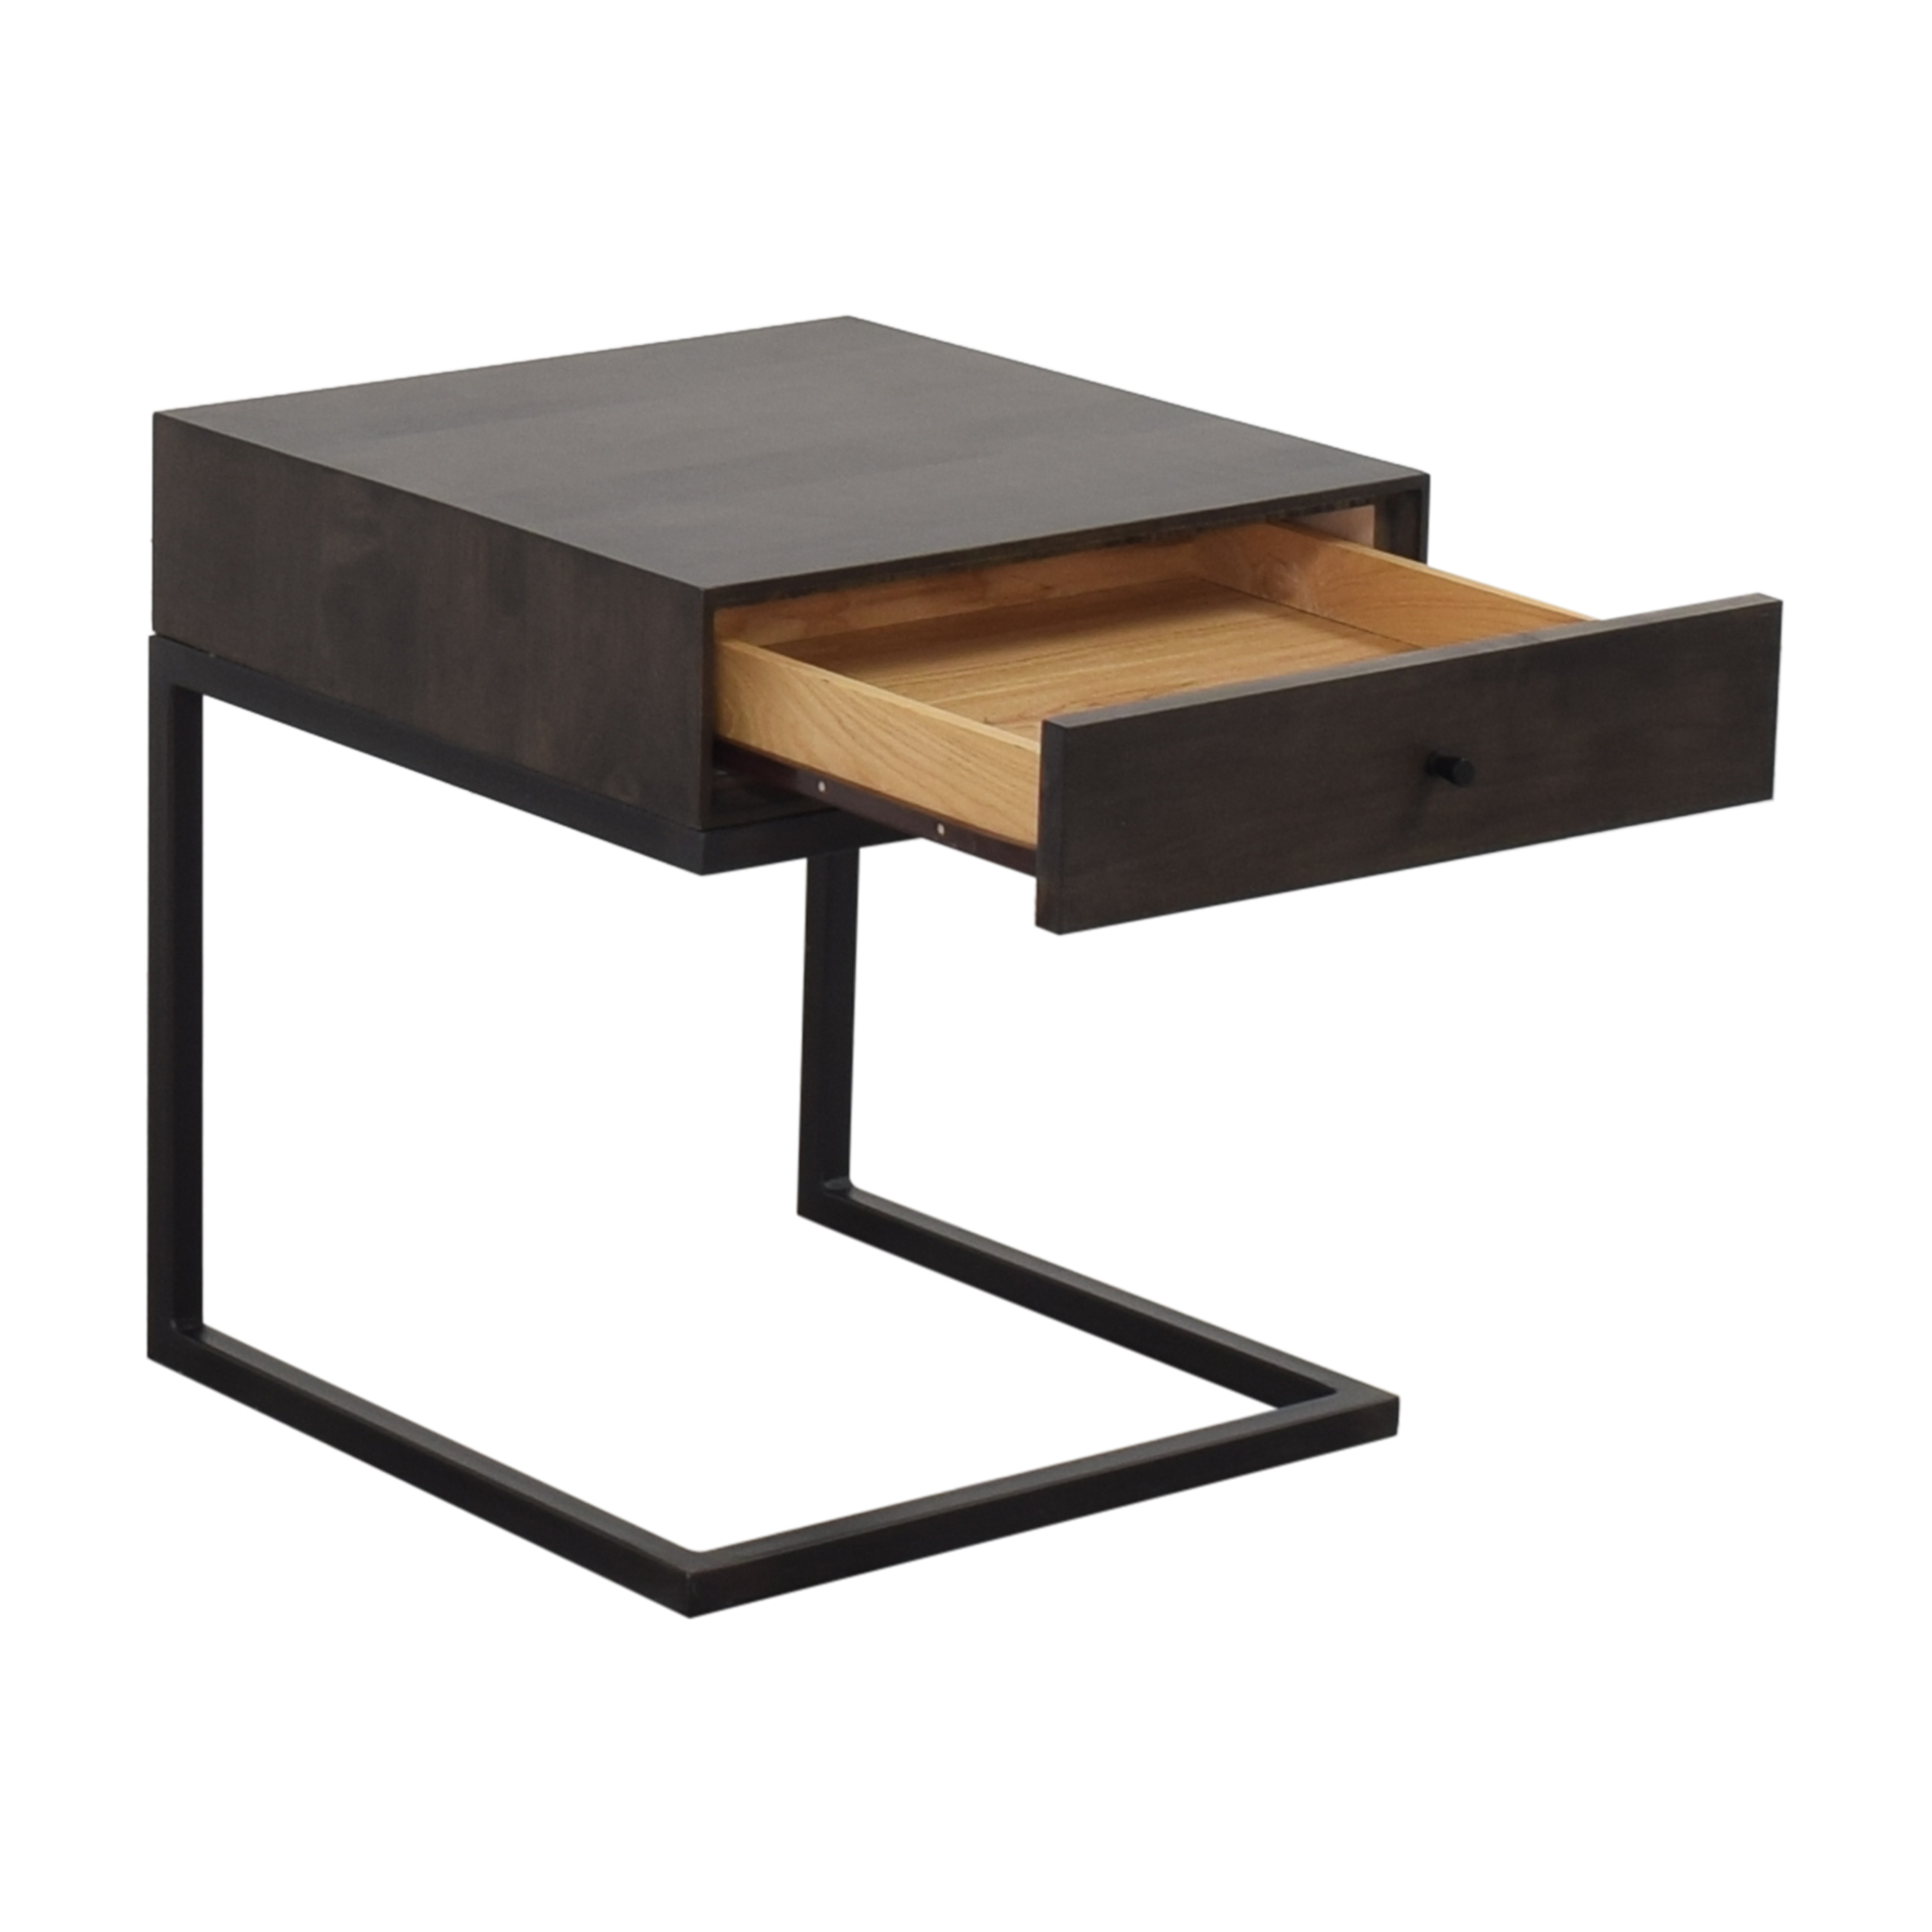 Room & Board Hudson One Drawer C-Table Nightstand sale